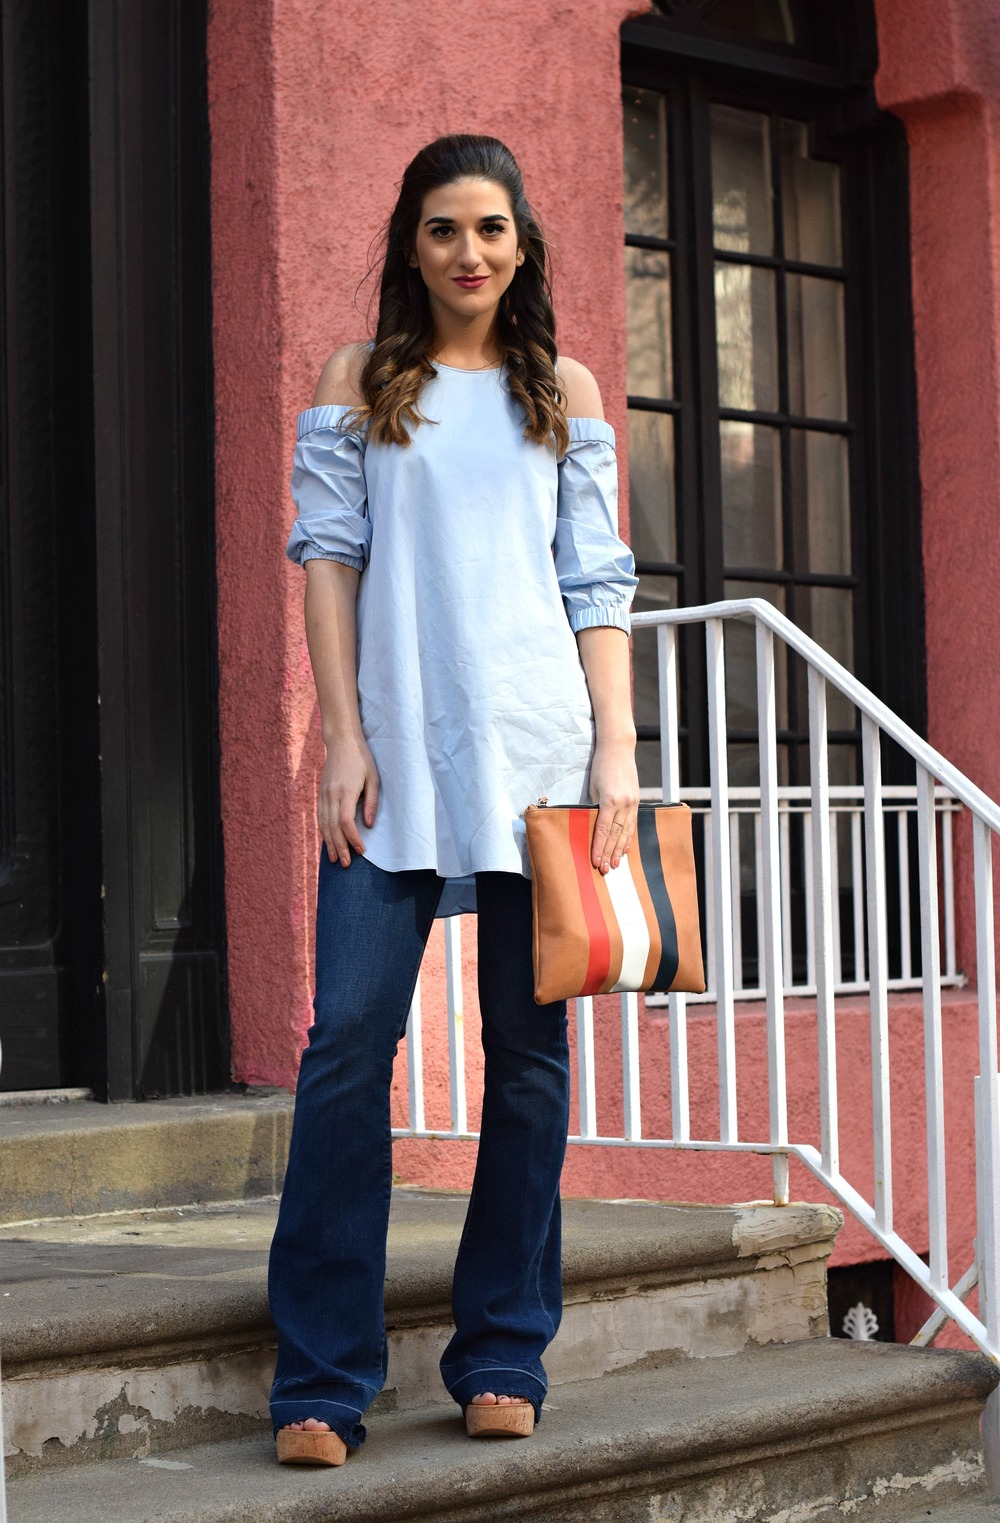 Cold Shoulder Tibi Top Frame Denim Louboutins & Love Fashion Blog Esther Santer NYC Fashion Blogger Jeans Designer Outfit OOTD Trunk Club Stylist Dolce Vita Platform Sandals Women Girl Online Shopping Inspo Inspiration Girly Buy Shoes Pretty Clutch.jpg